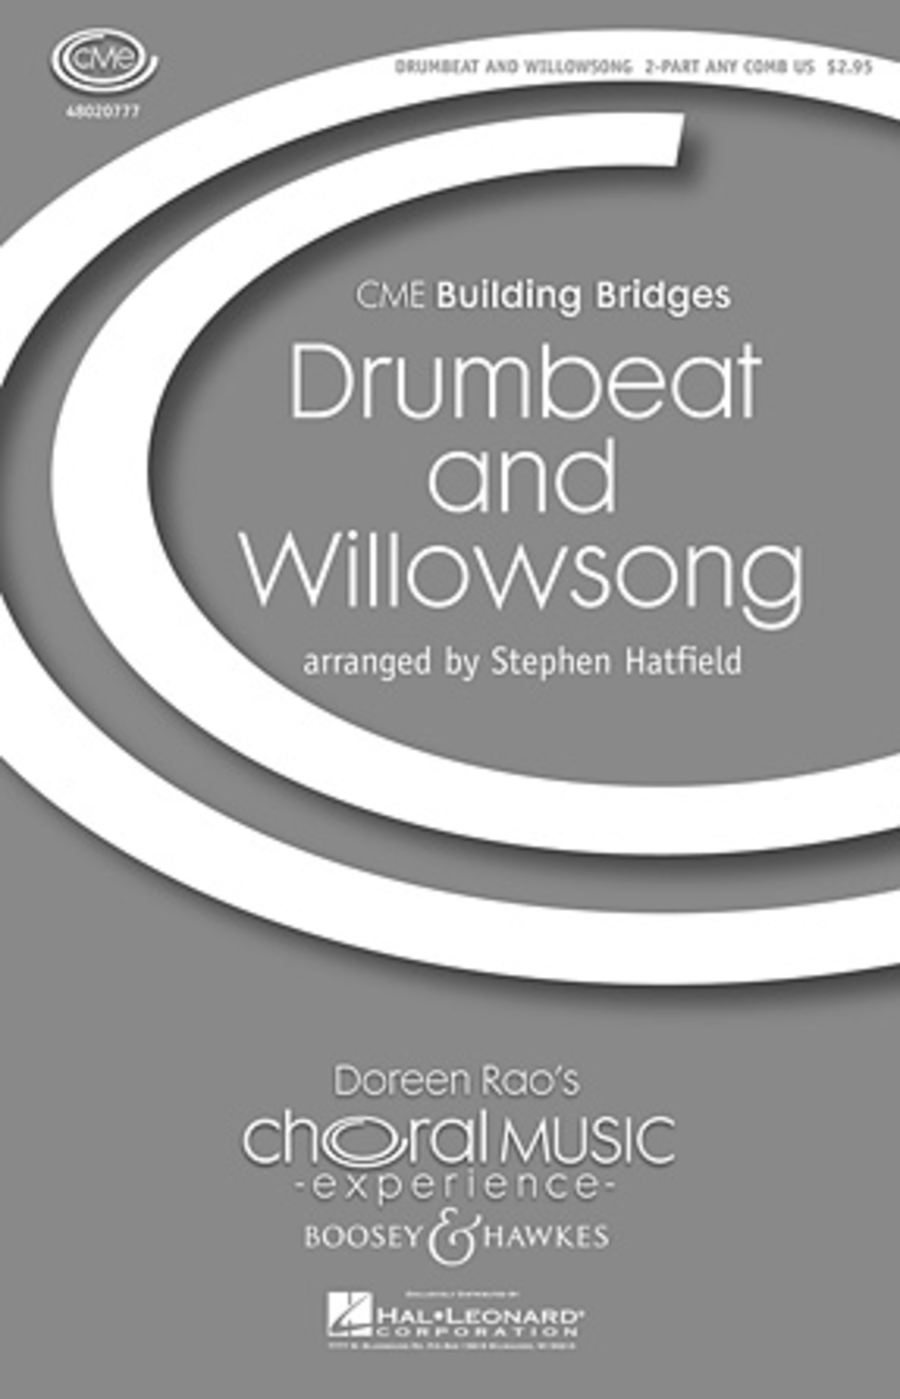 Drumbeat and Willowsong